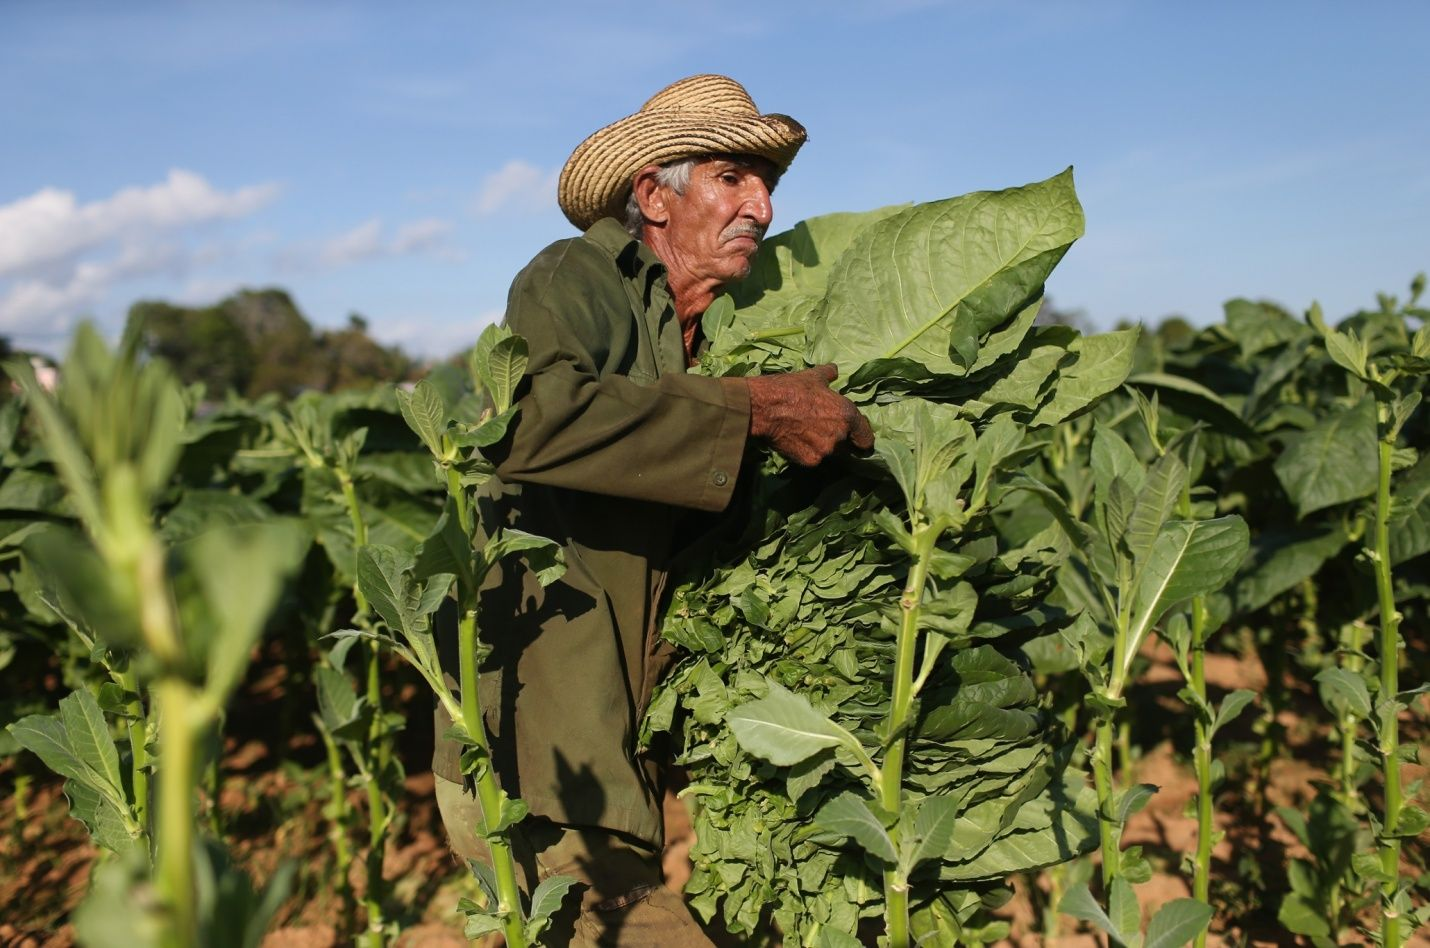 Lorenzo Rodriguez Hernandez harvests tobacco leaves for drying on a co-op plantation, Pinar del Rio, Vuelta Abajo, Cuba, 2015, photograph by Joe Raedle.